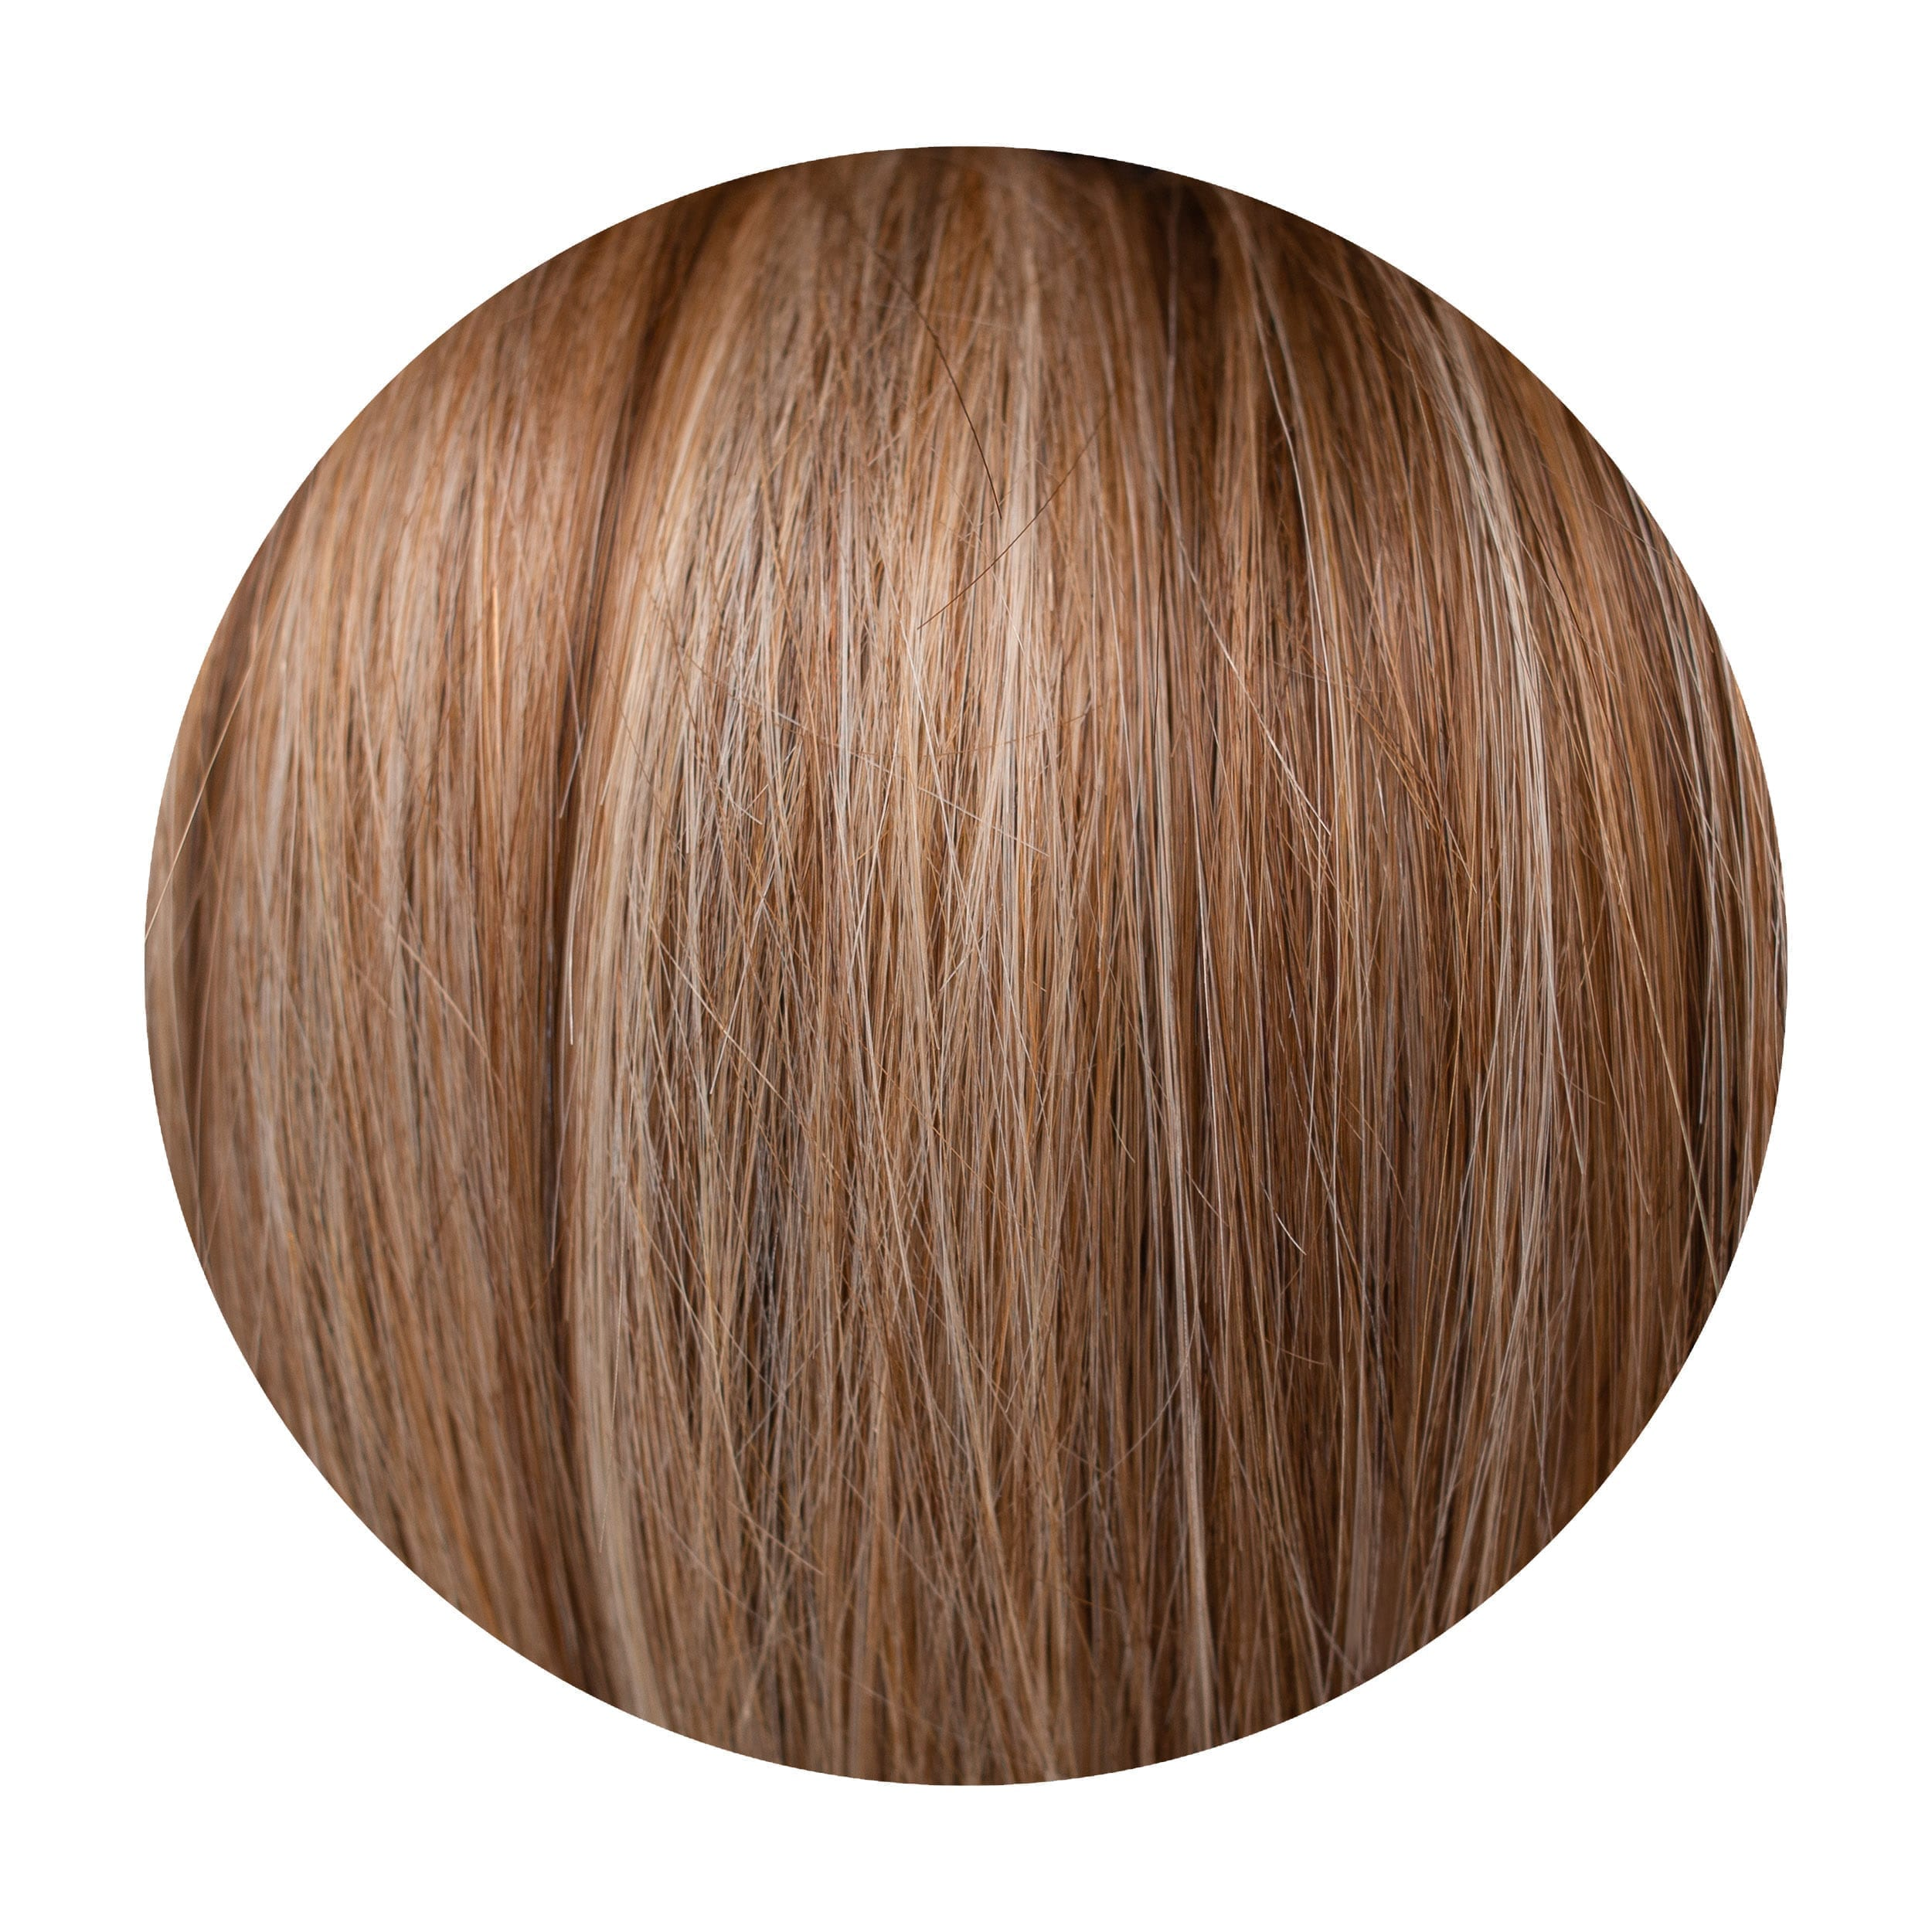 Vanilla Blend Piano Colour Human Hair Extensions Clip in 1 Piece